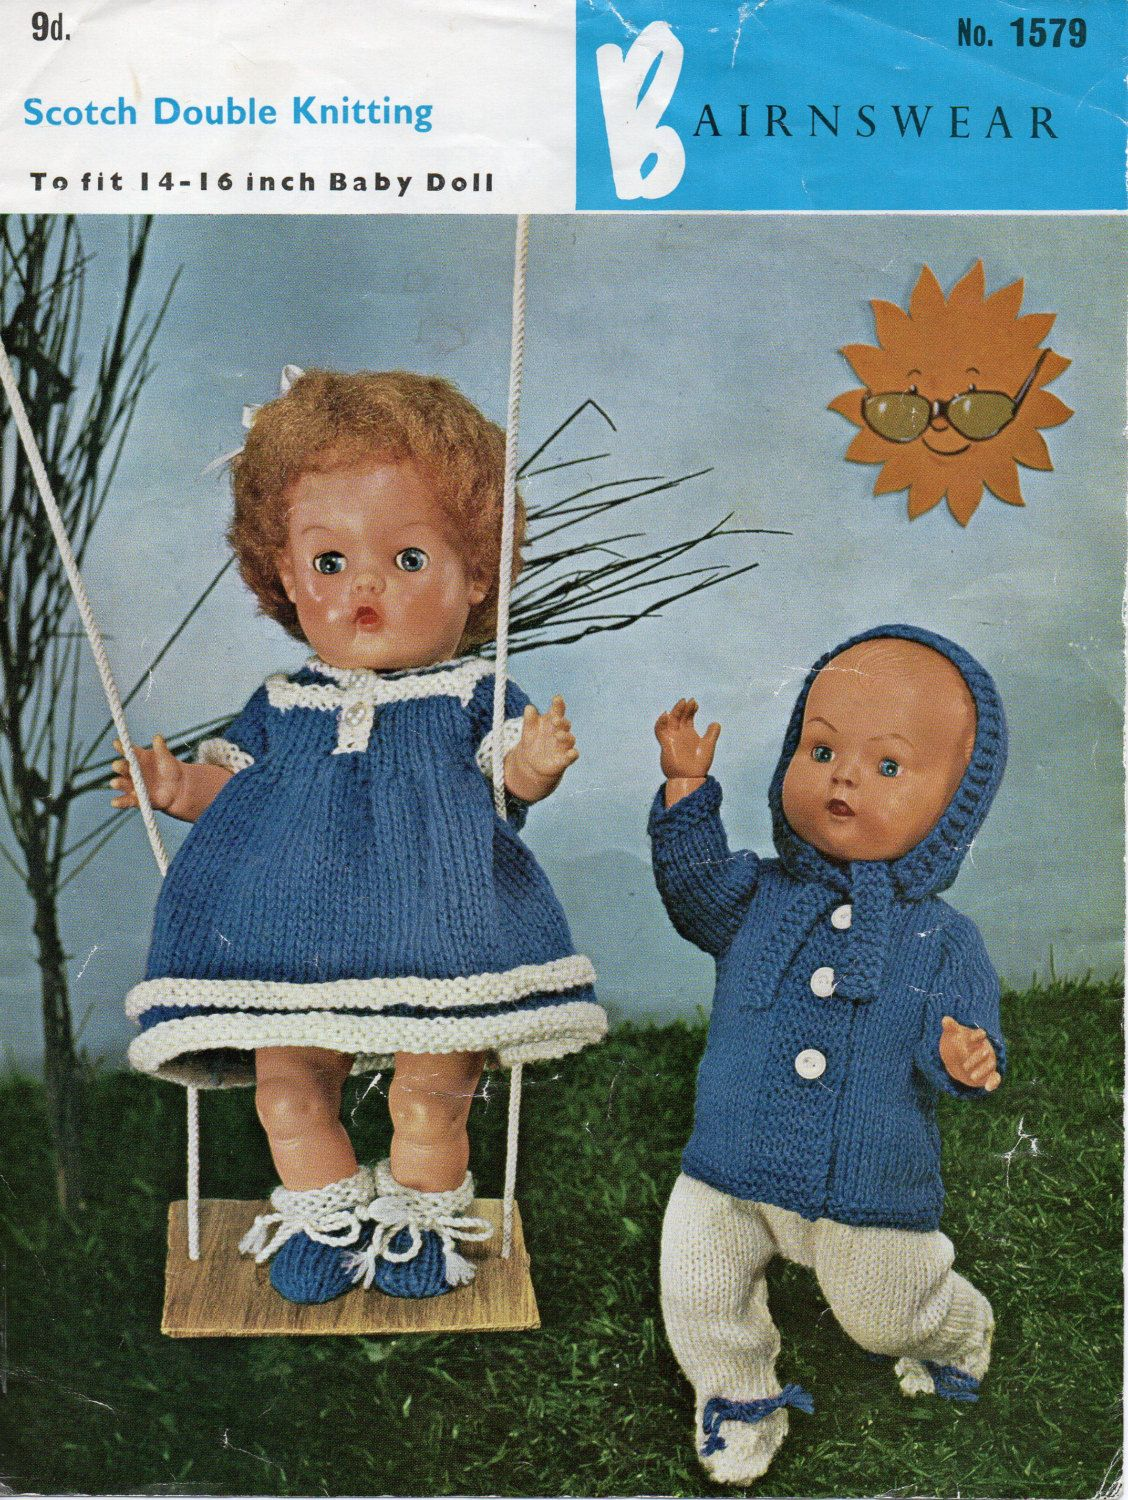 Baby Dolls Knitting Pattern, baby dolls clothes baby dolls outfits baby doll14-16 inch doll DK Dolls Clothes pattern PDF Instant Download by Minihobo on Etsy